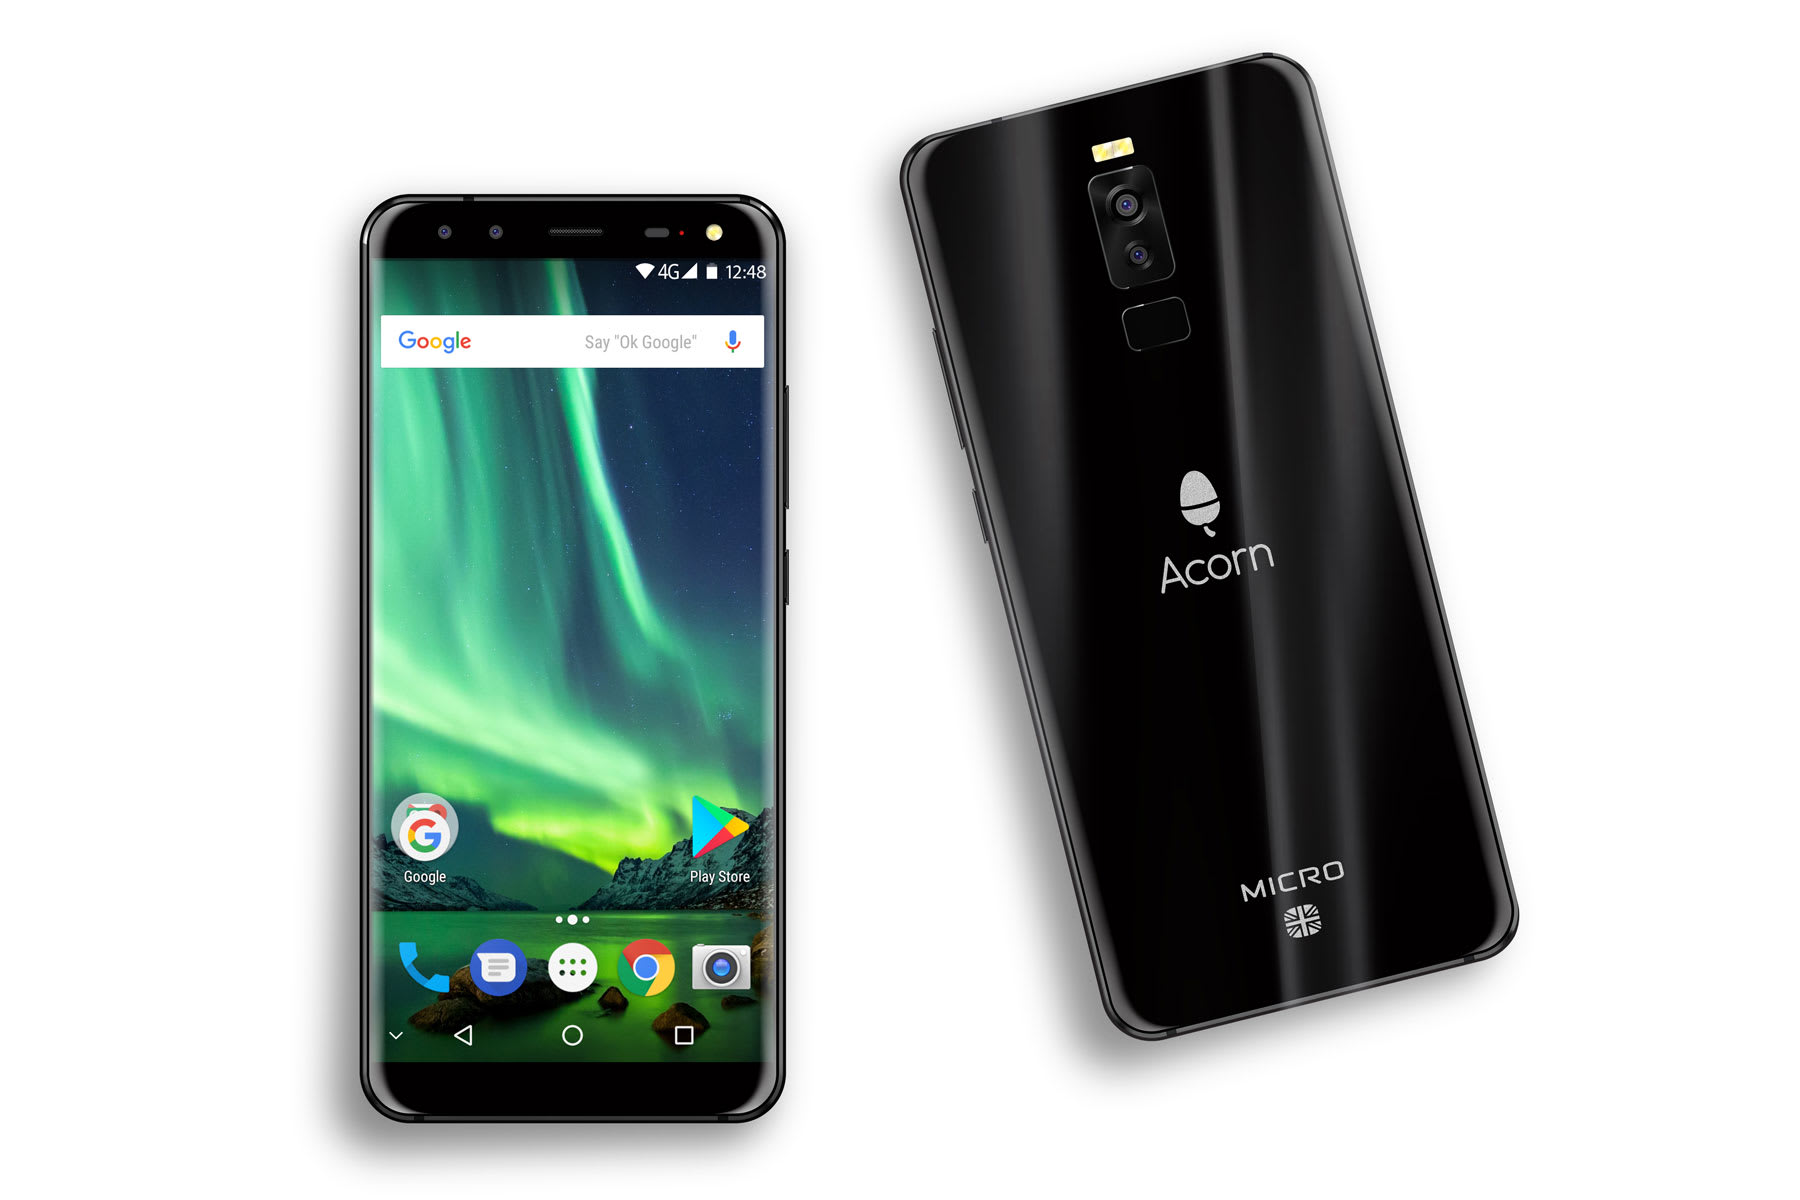 a0b71f617ac UK tech brand Acorn taps nostalgia to sell a rebranded phone